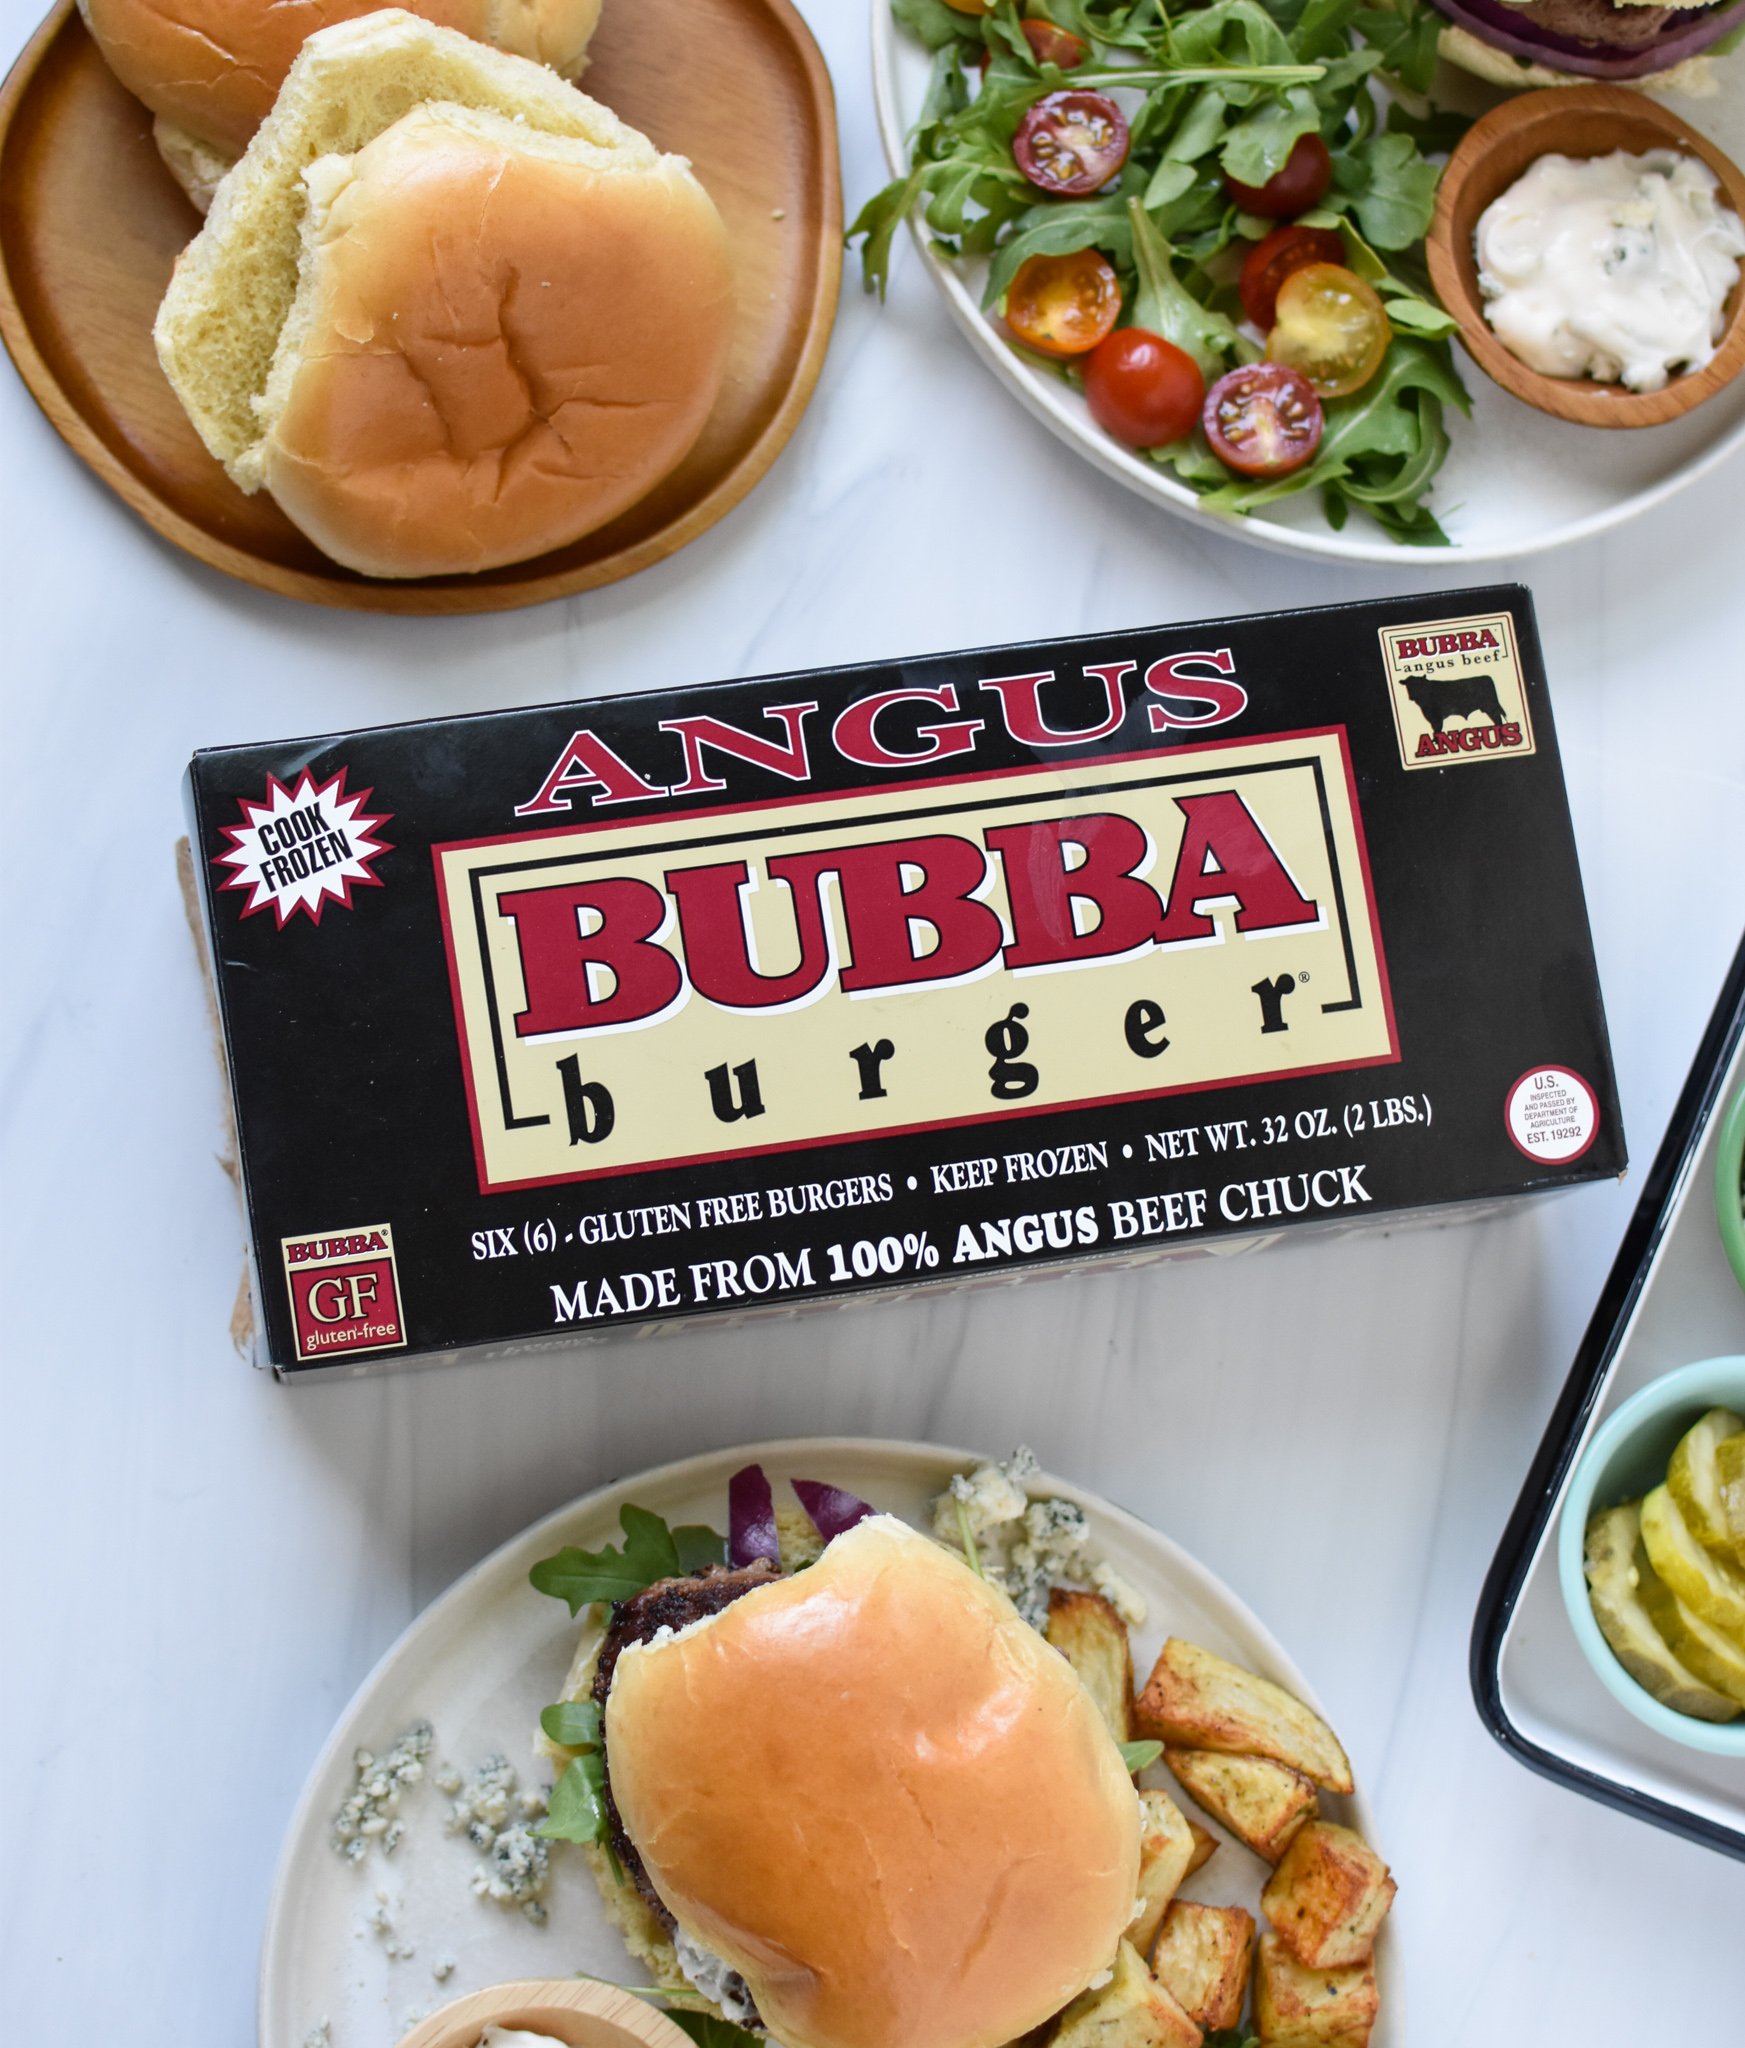 Easy Blue Cheese Burger with box of angus burgers.